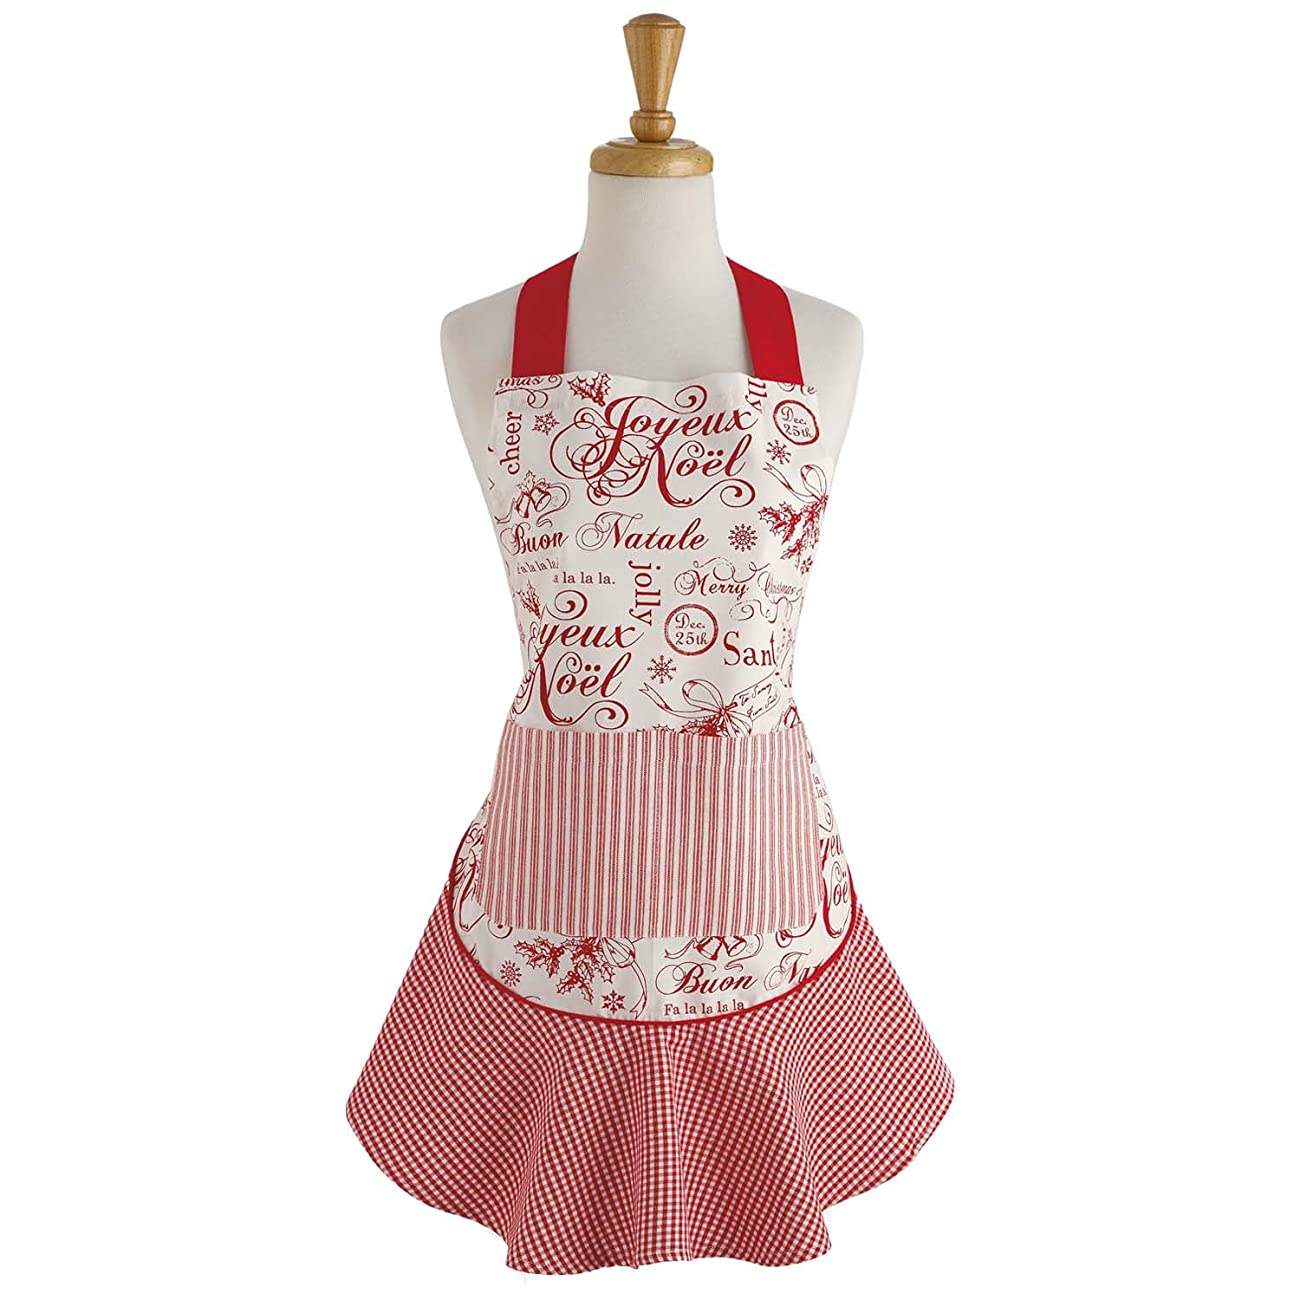 DII 100% Cotton, Holiday Women Cute Ruffle Apron, Kitchen Basic, Adjustable Neck & Waist Ties, Cooking, Baking, Crafting and More, Christmas Gift - Vintage Christmas 0